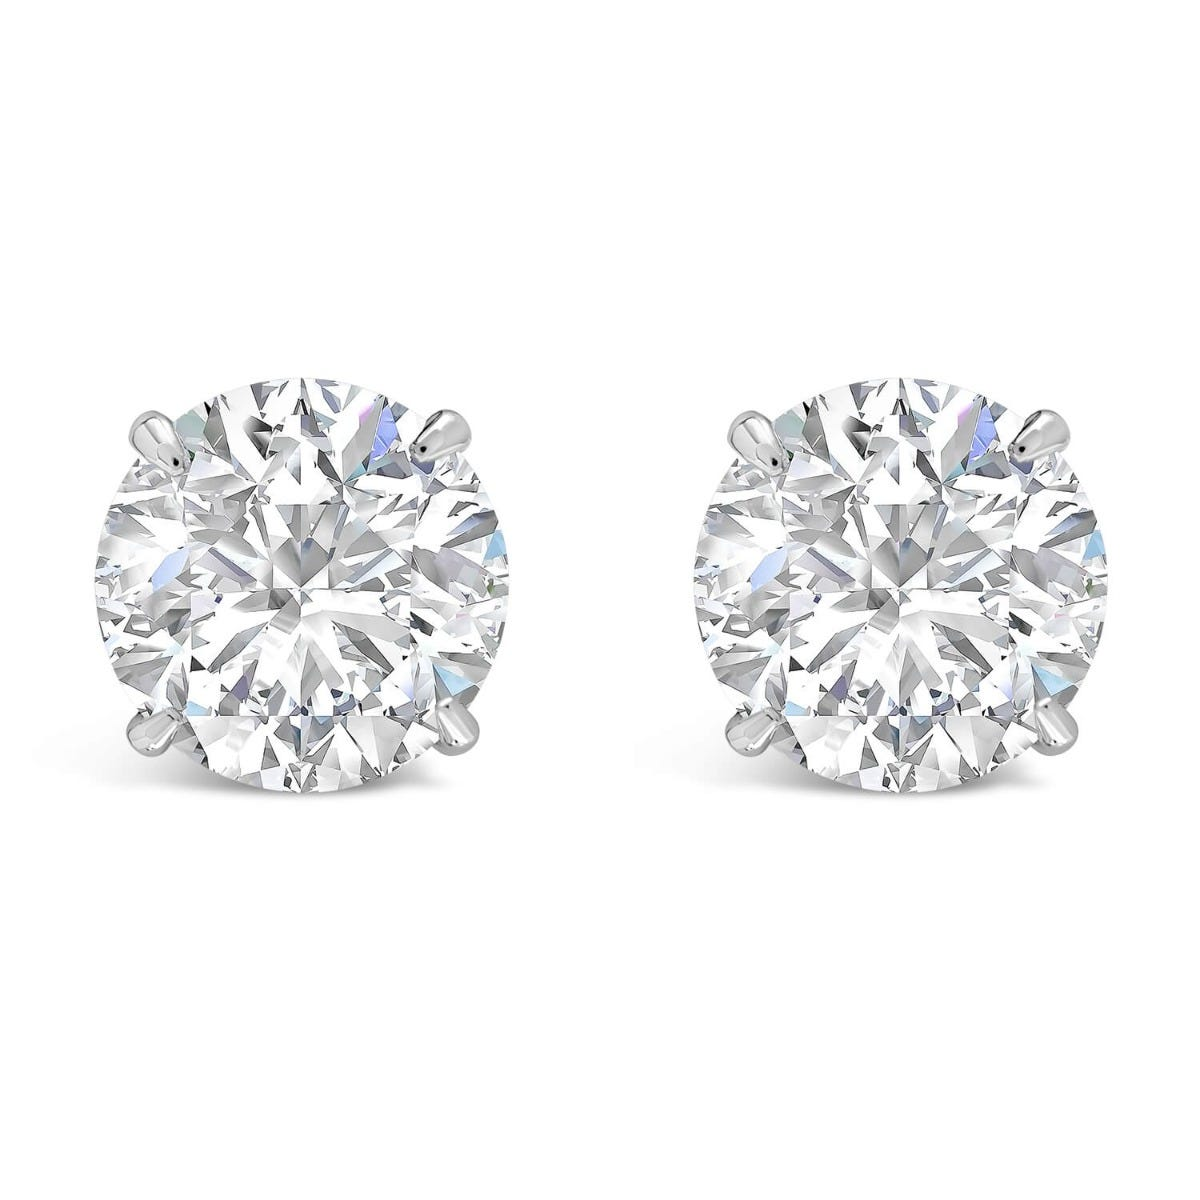 CARAT* London 9ct White Gold 6.5mm Brilliant Cut 4-Prong Stud Earrings